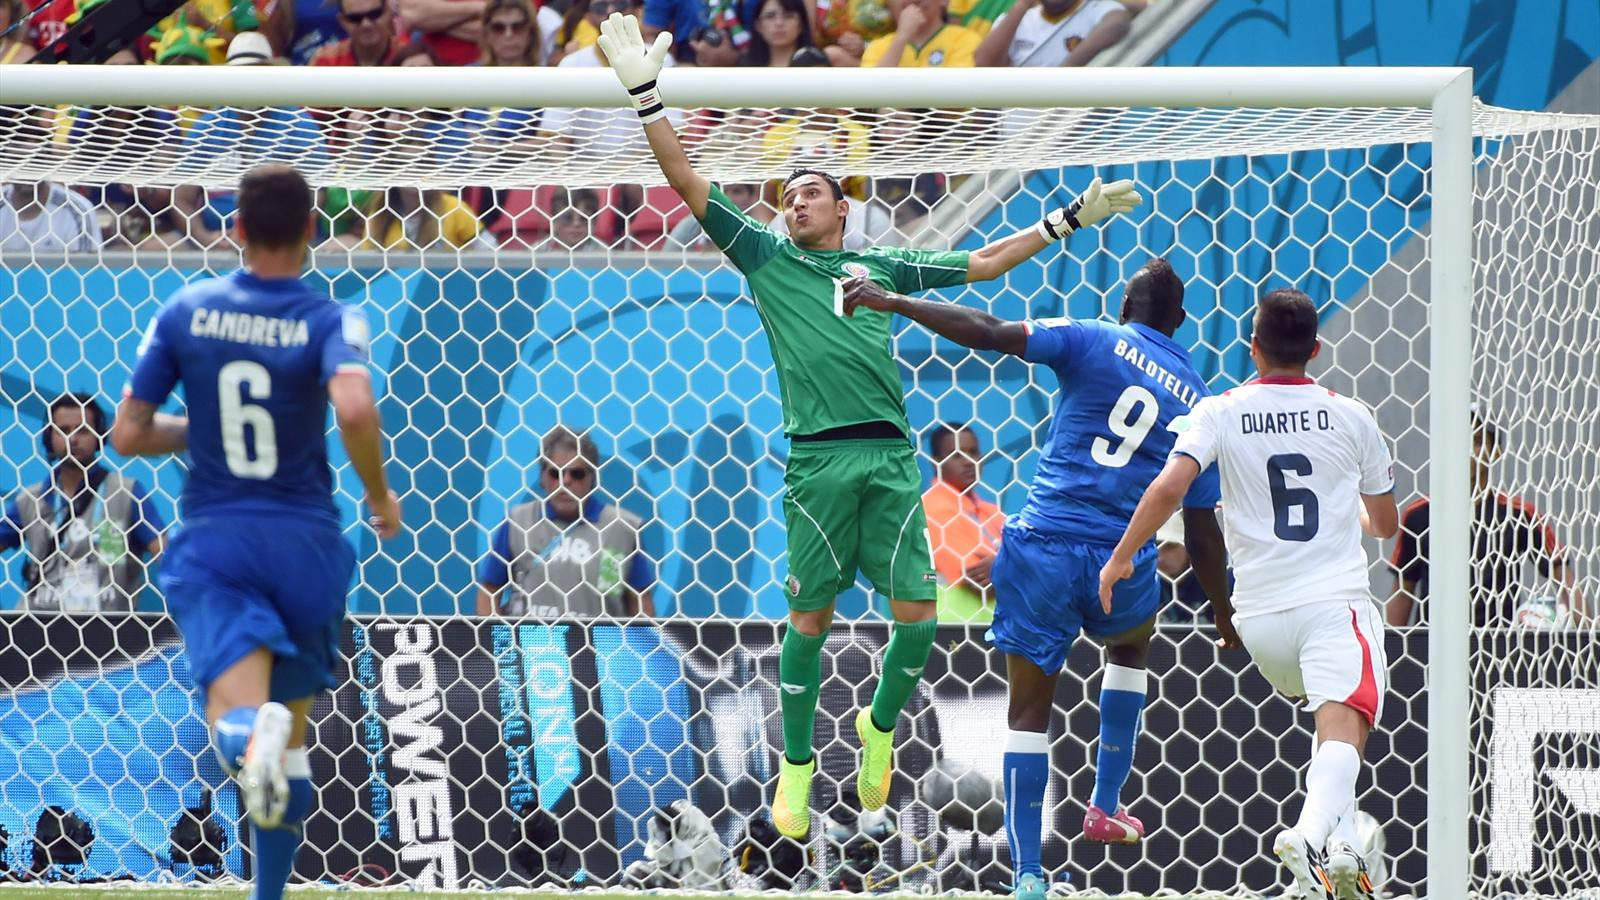 Balotelli miss - Italia vs Costa Rica - World Cup 2014 (AFP)